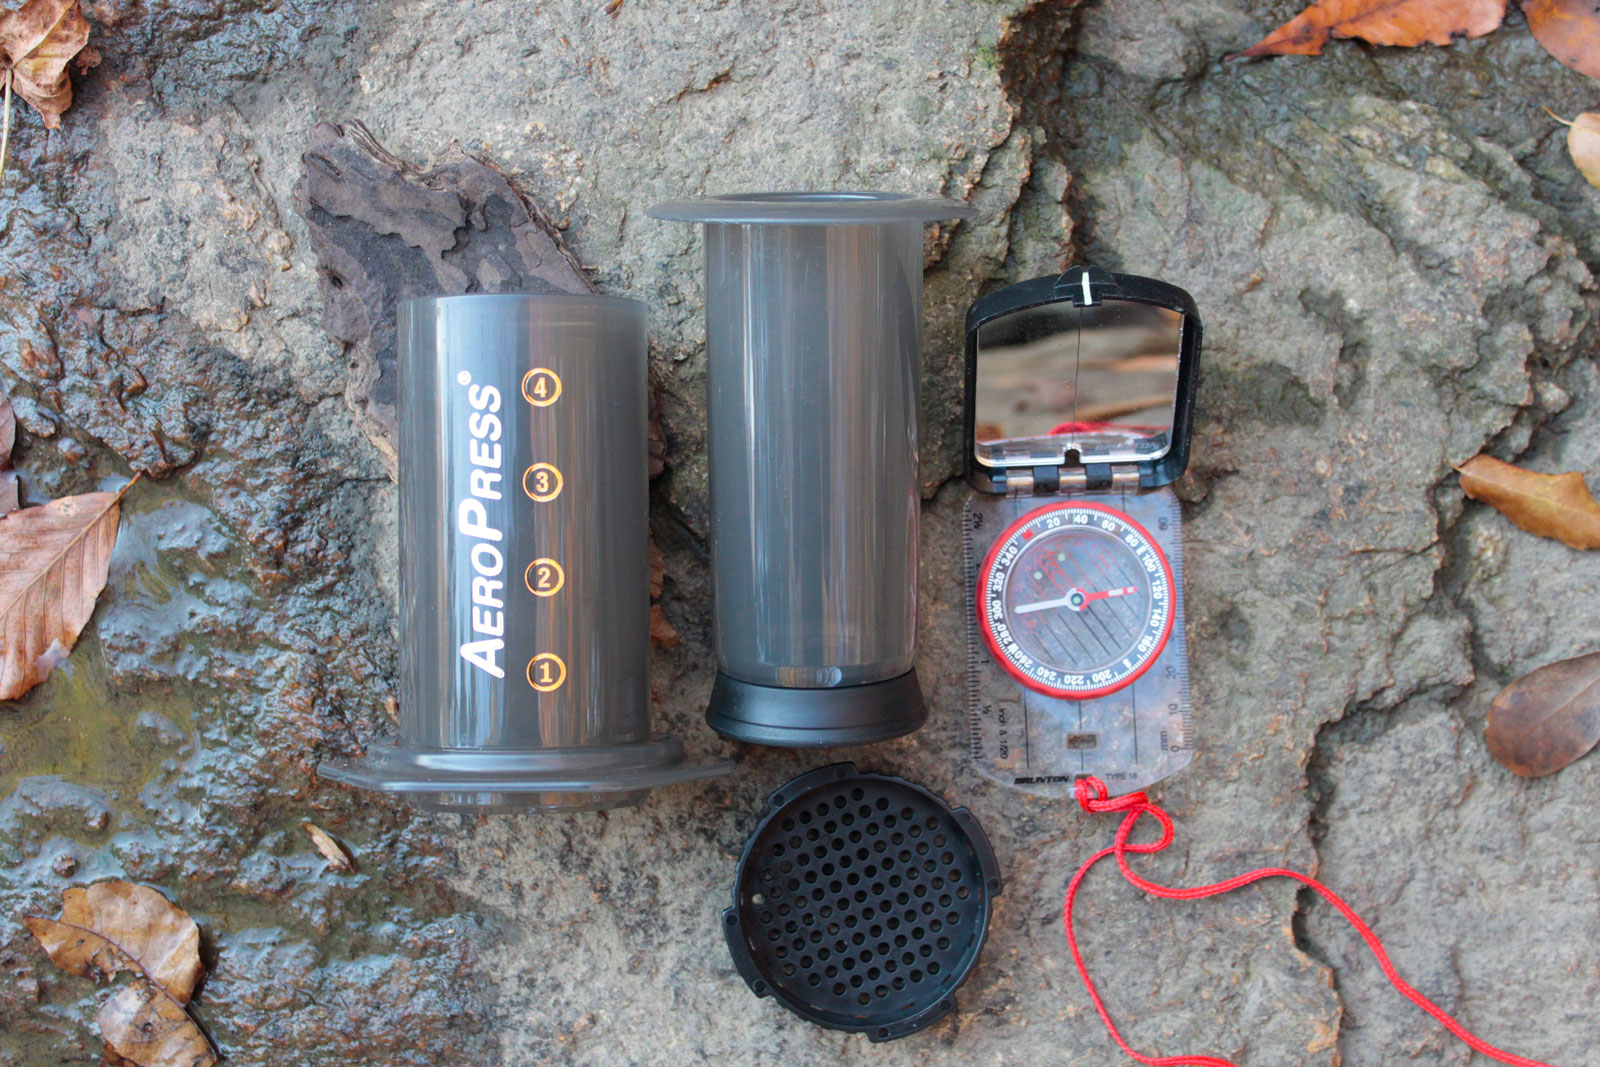 Photograph of an AeroPress Coffee Press on a rock with a compass shown for size